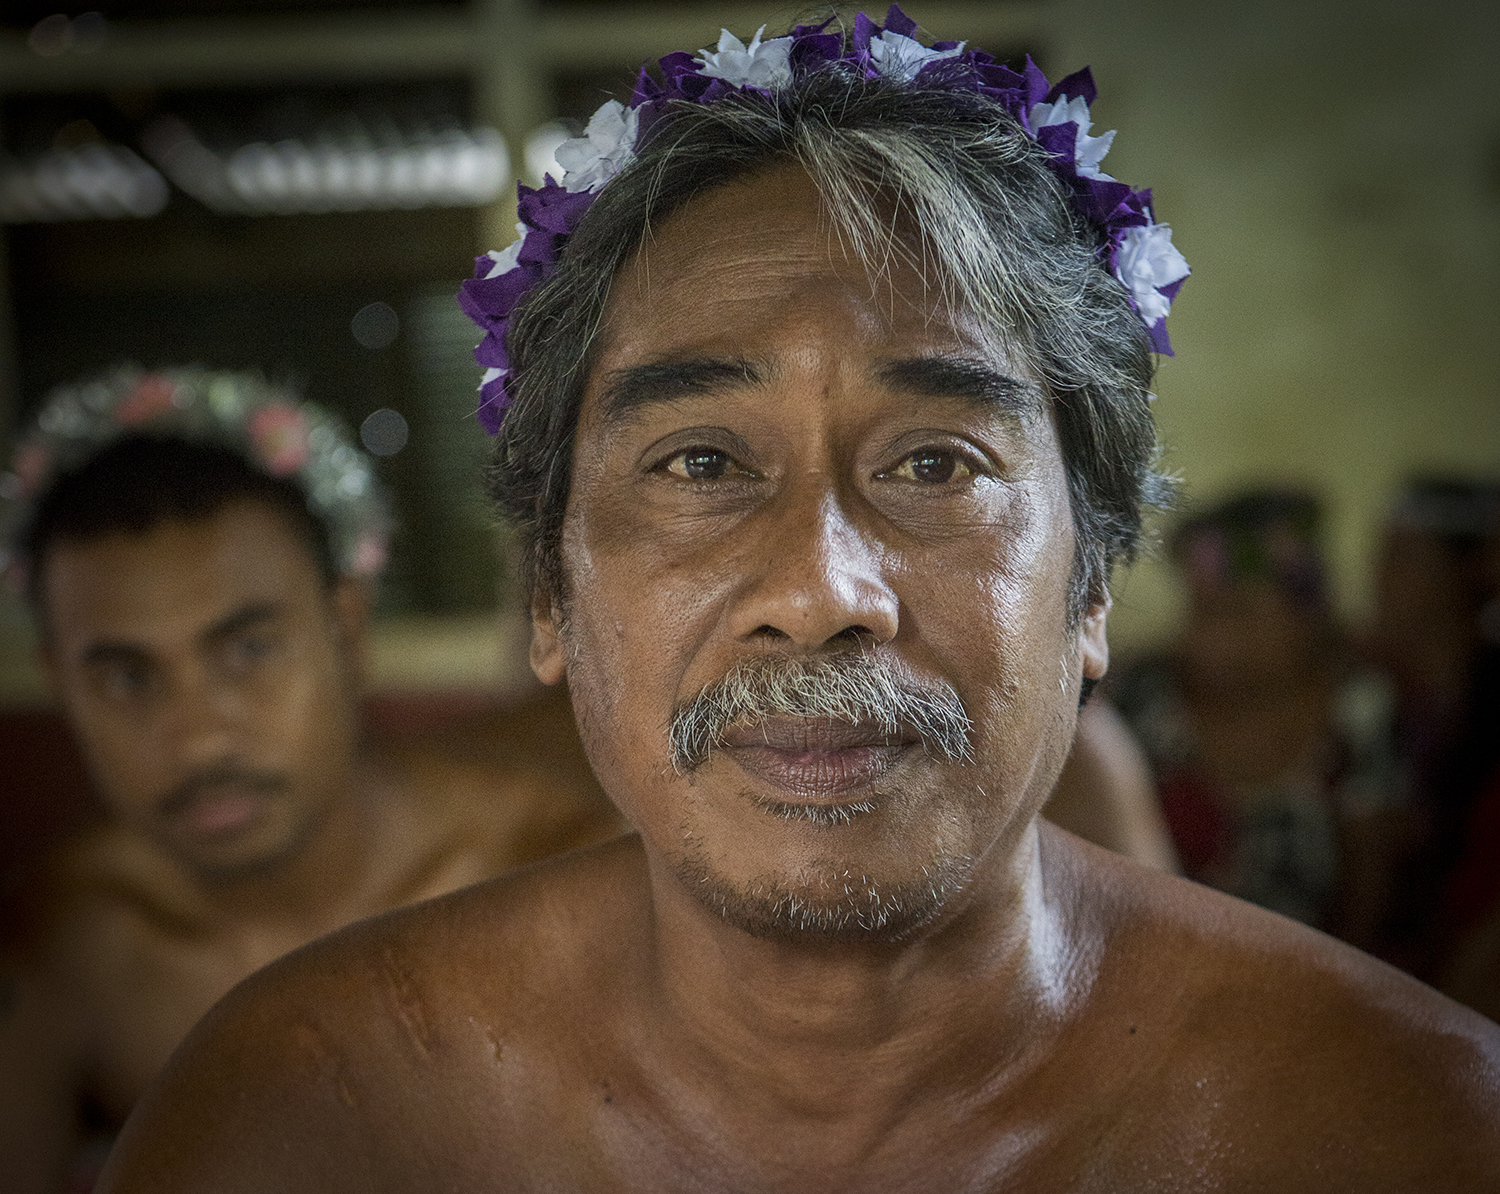 <p>After drinking sakau, there are few worries, as this Pohnpei man shows.</p>